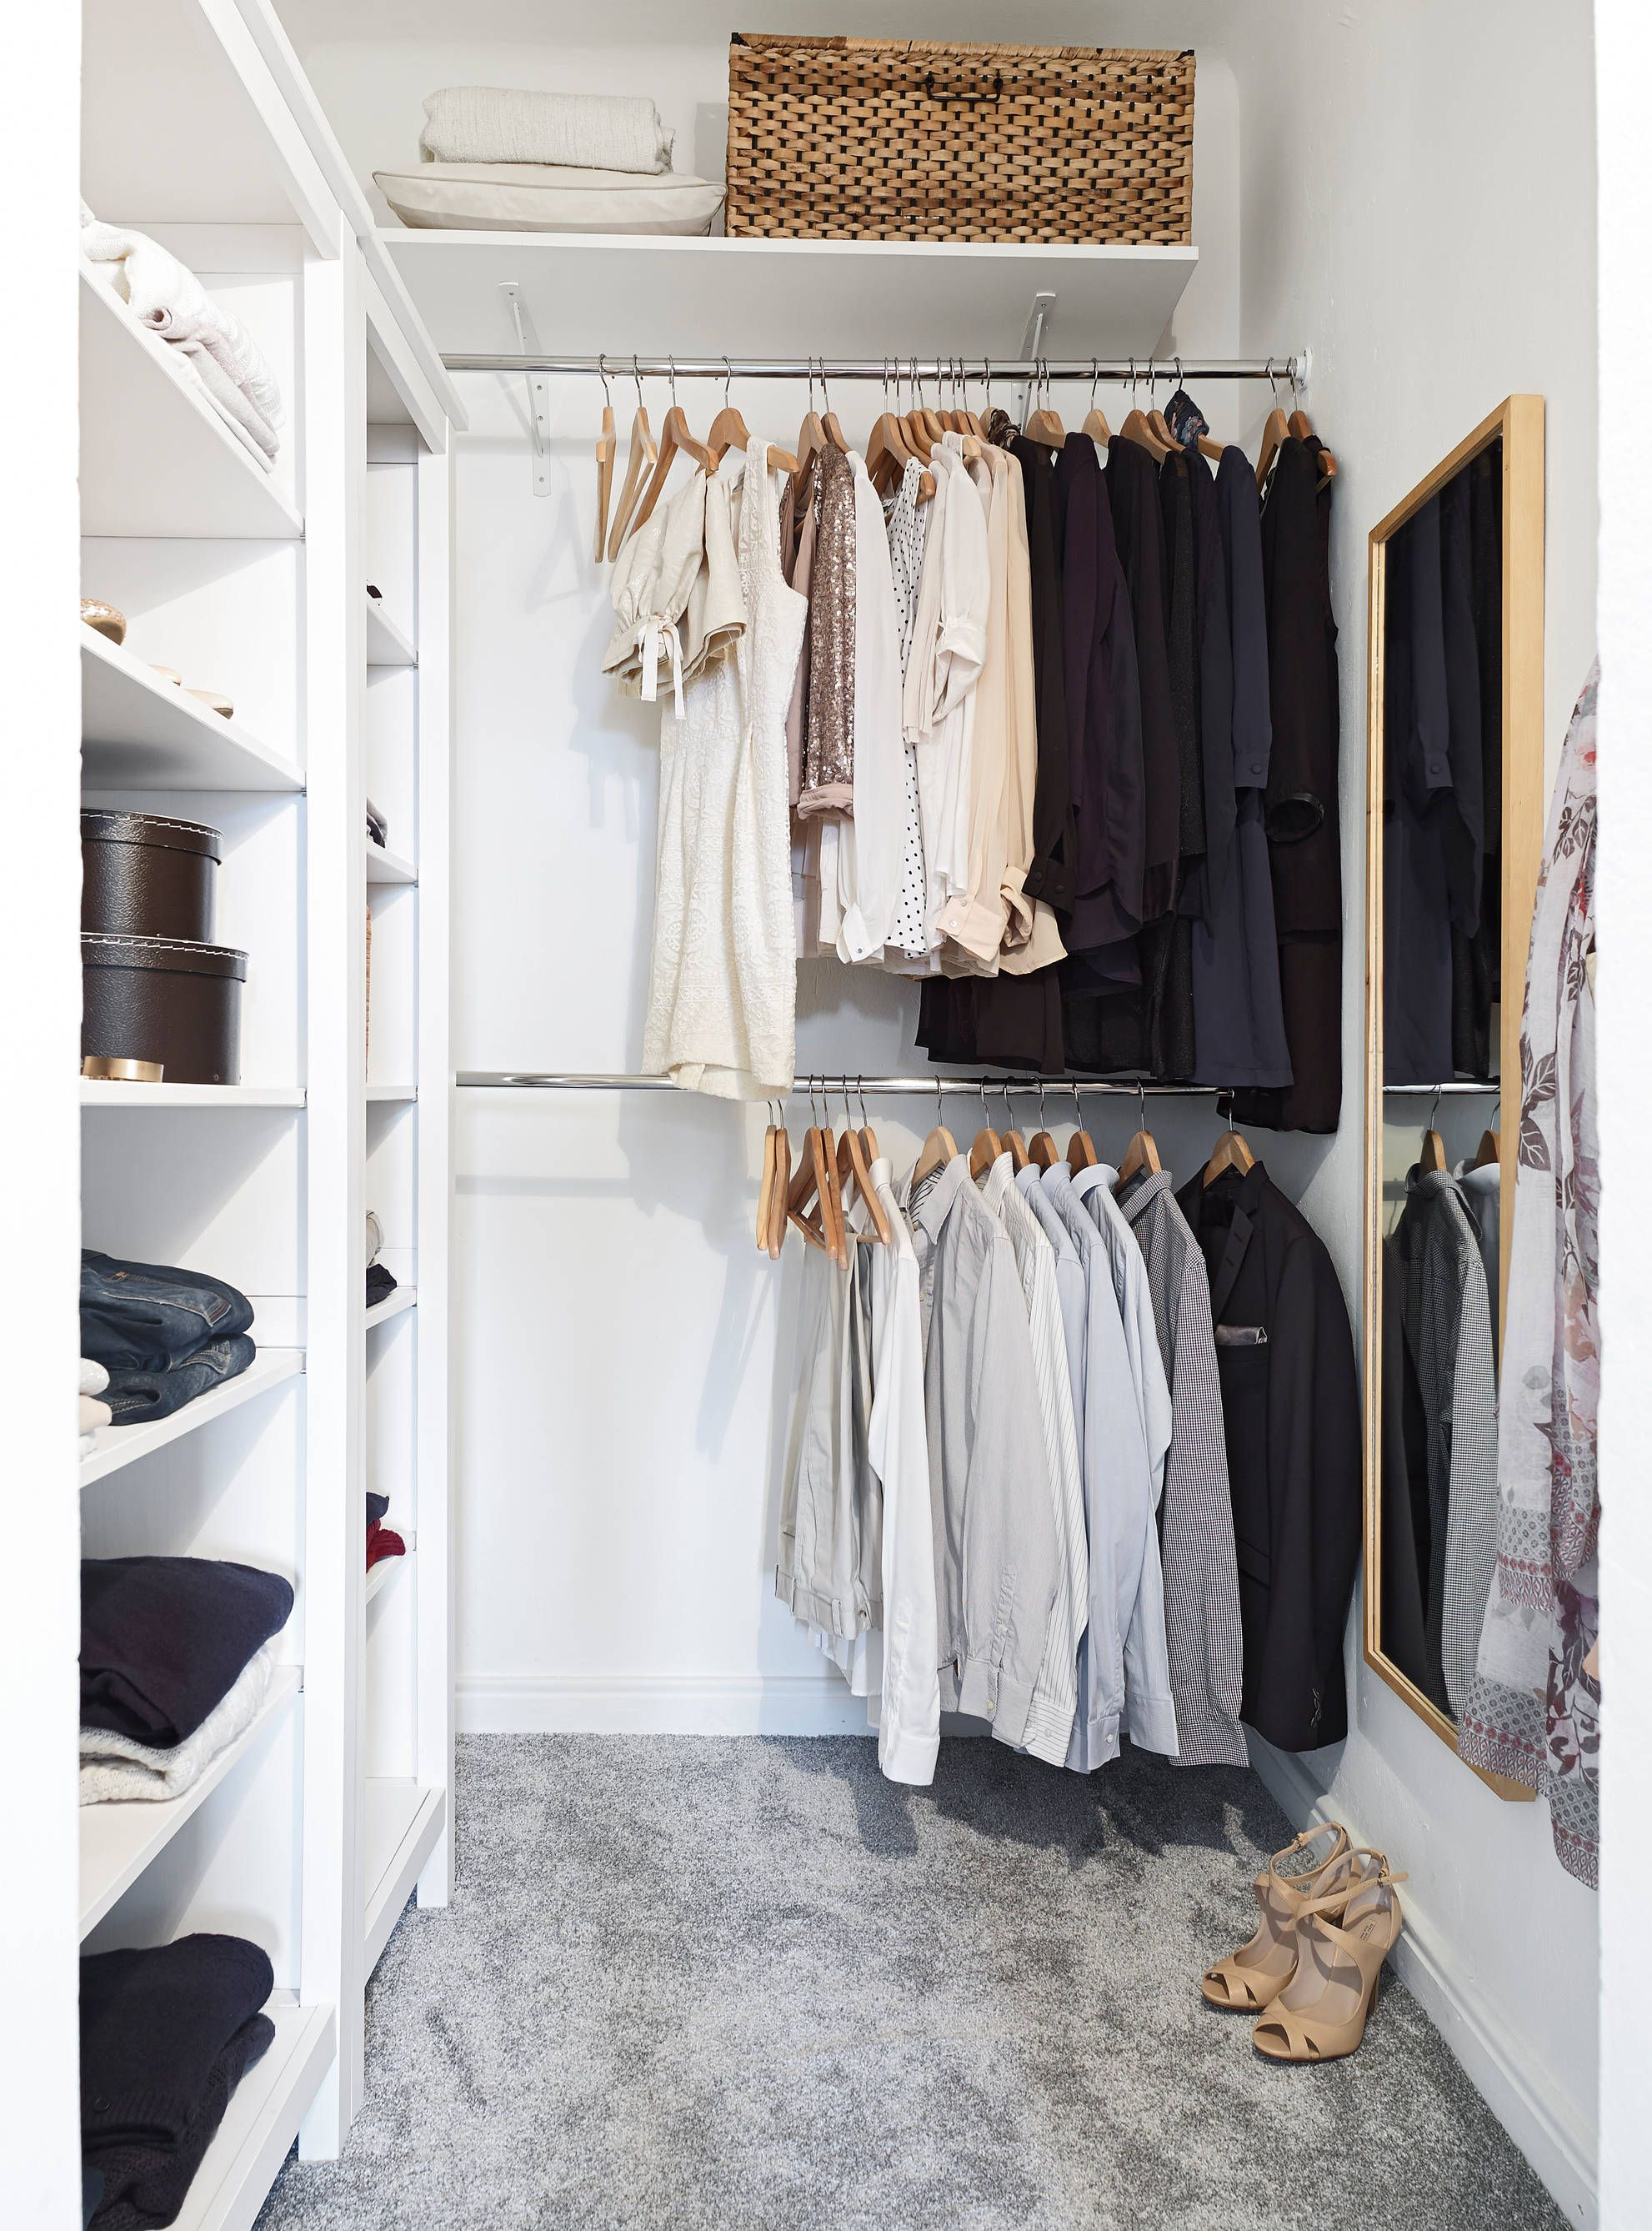 12 small walk in closet ideas and organizer designs on extraordinary small walk in closet ideas makeovers id=67969